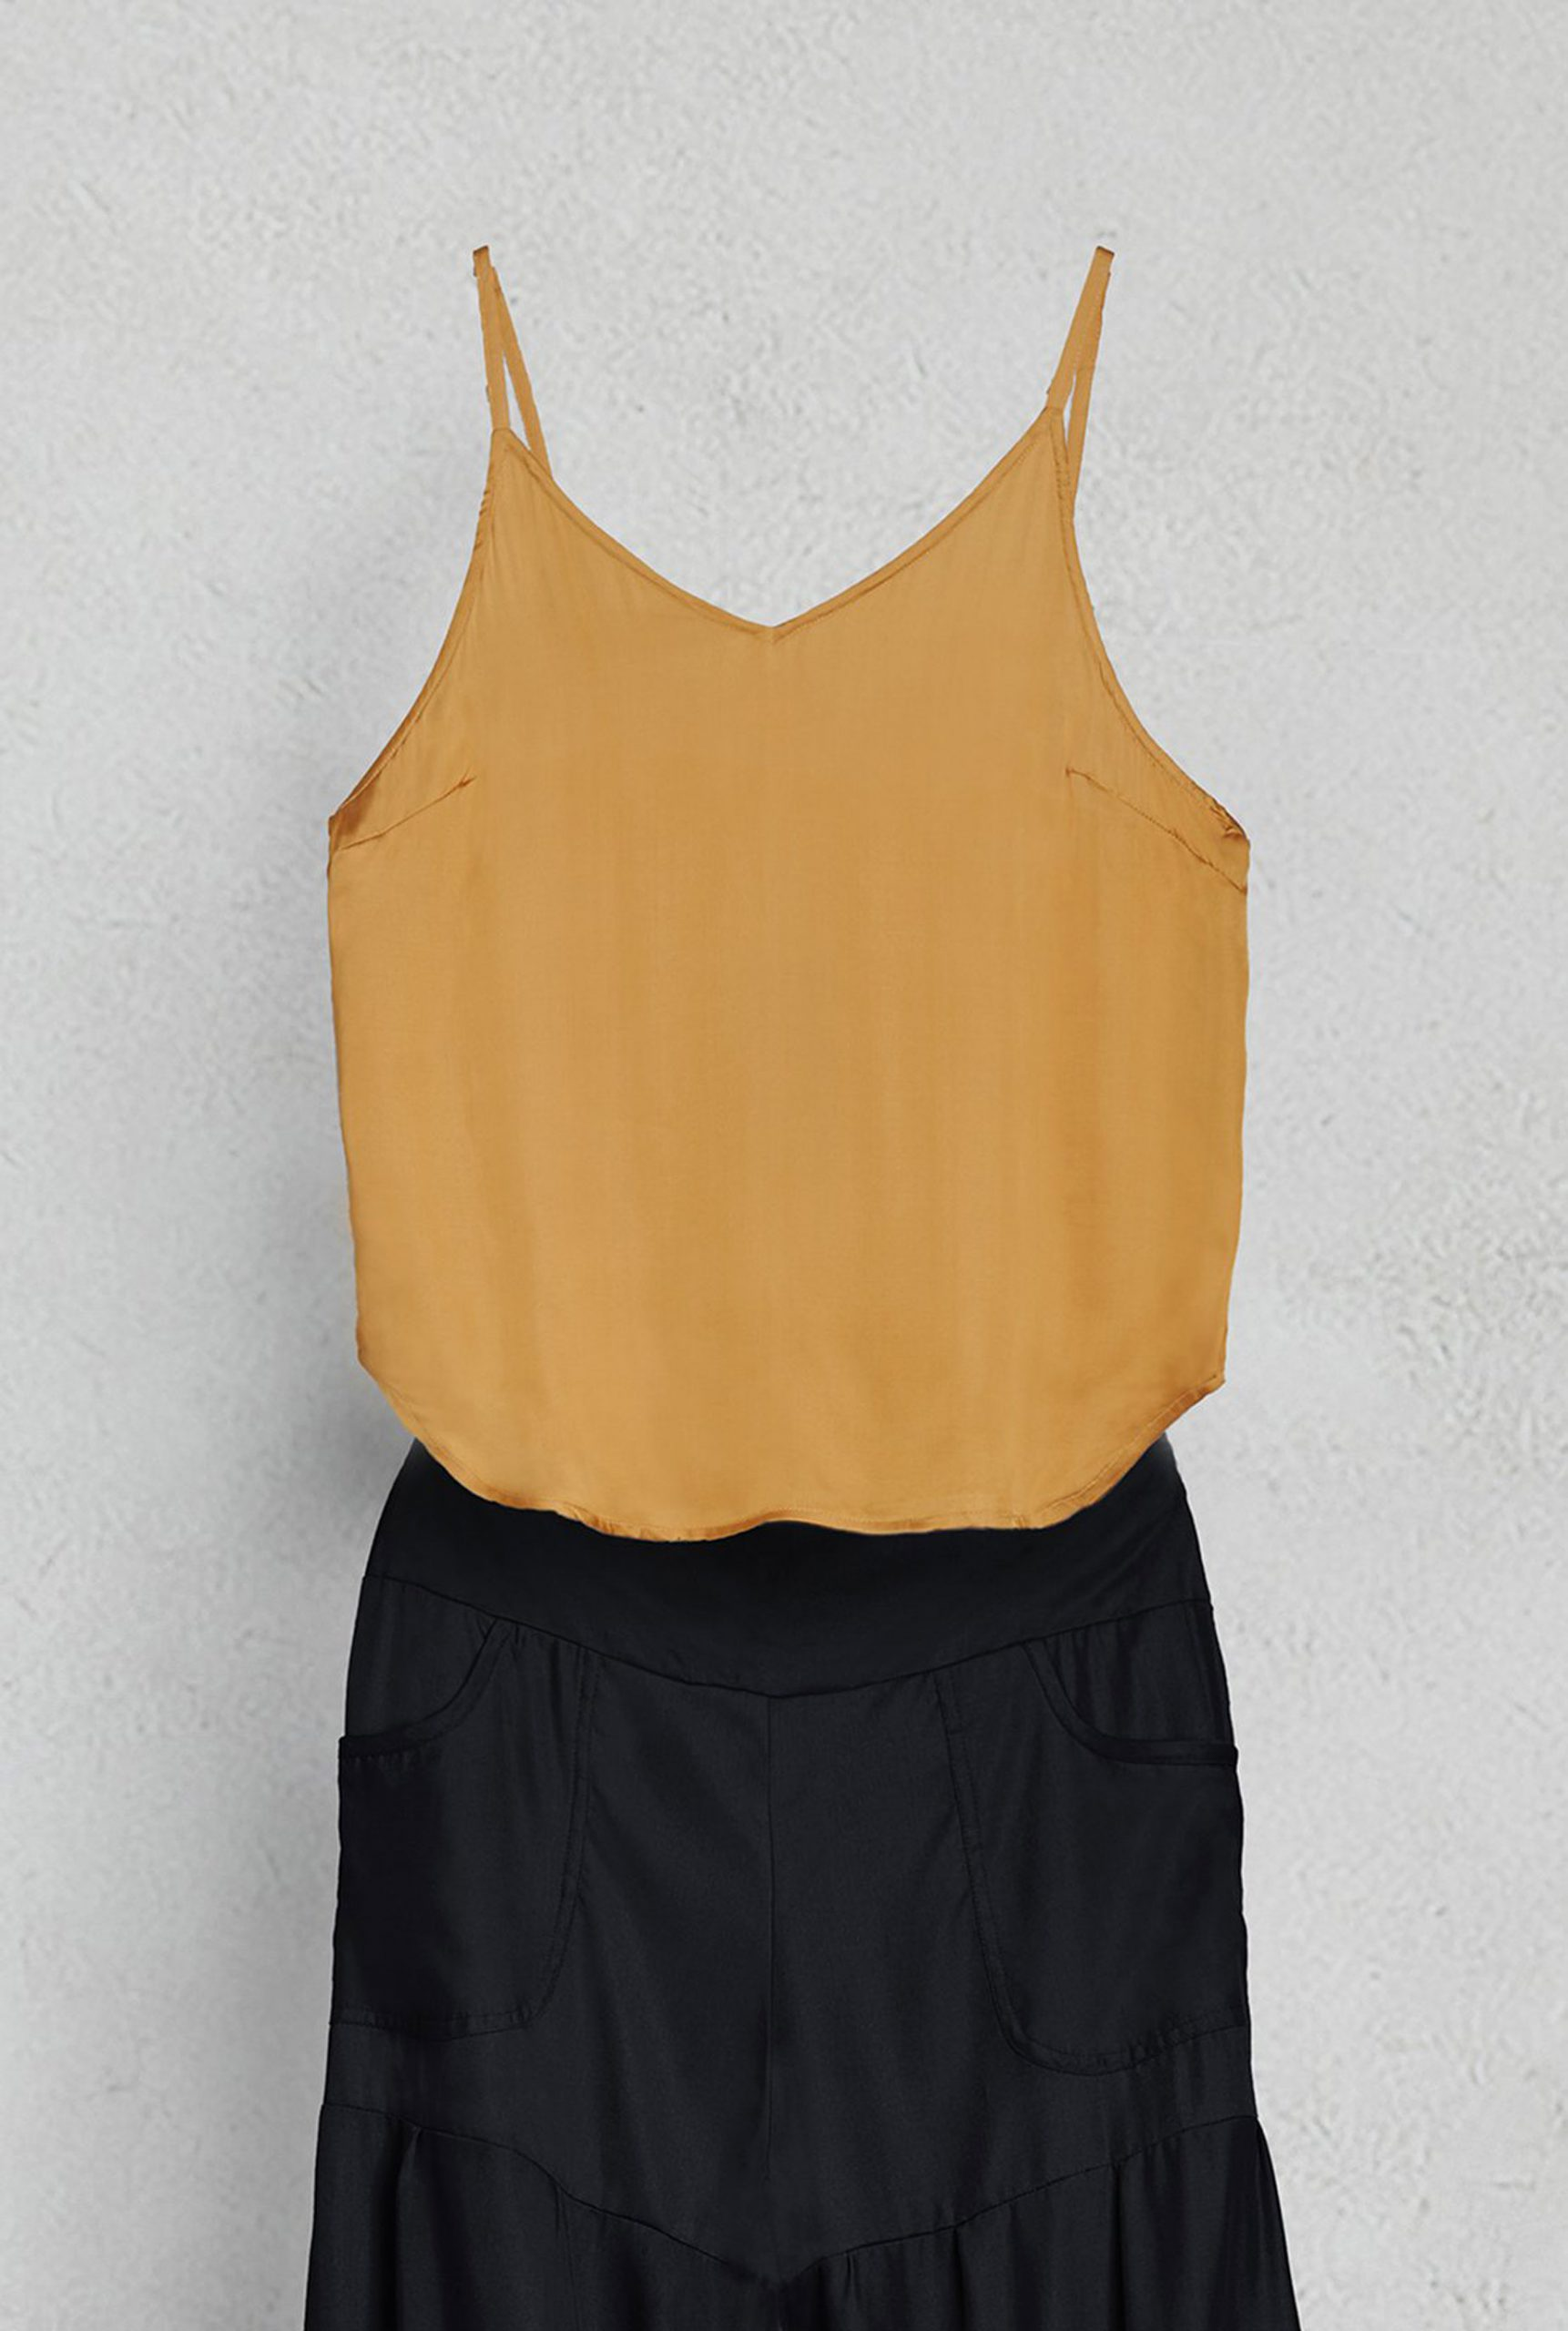 Maggie May Tank Top